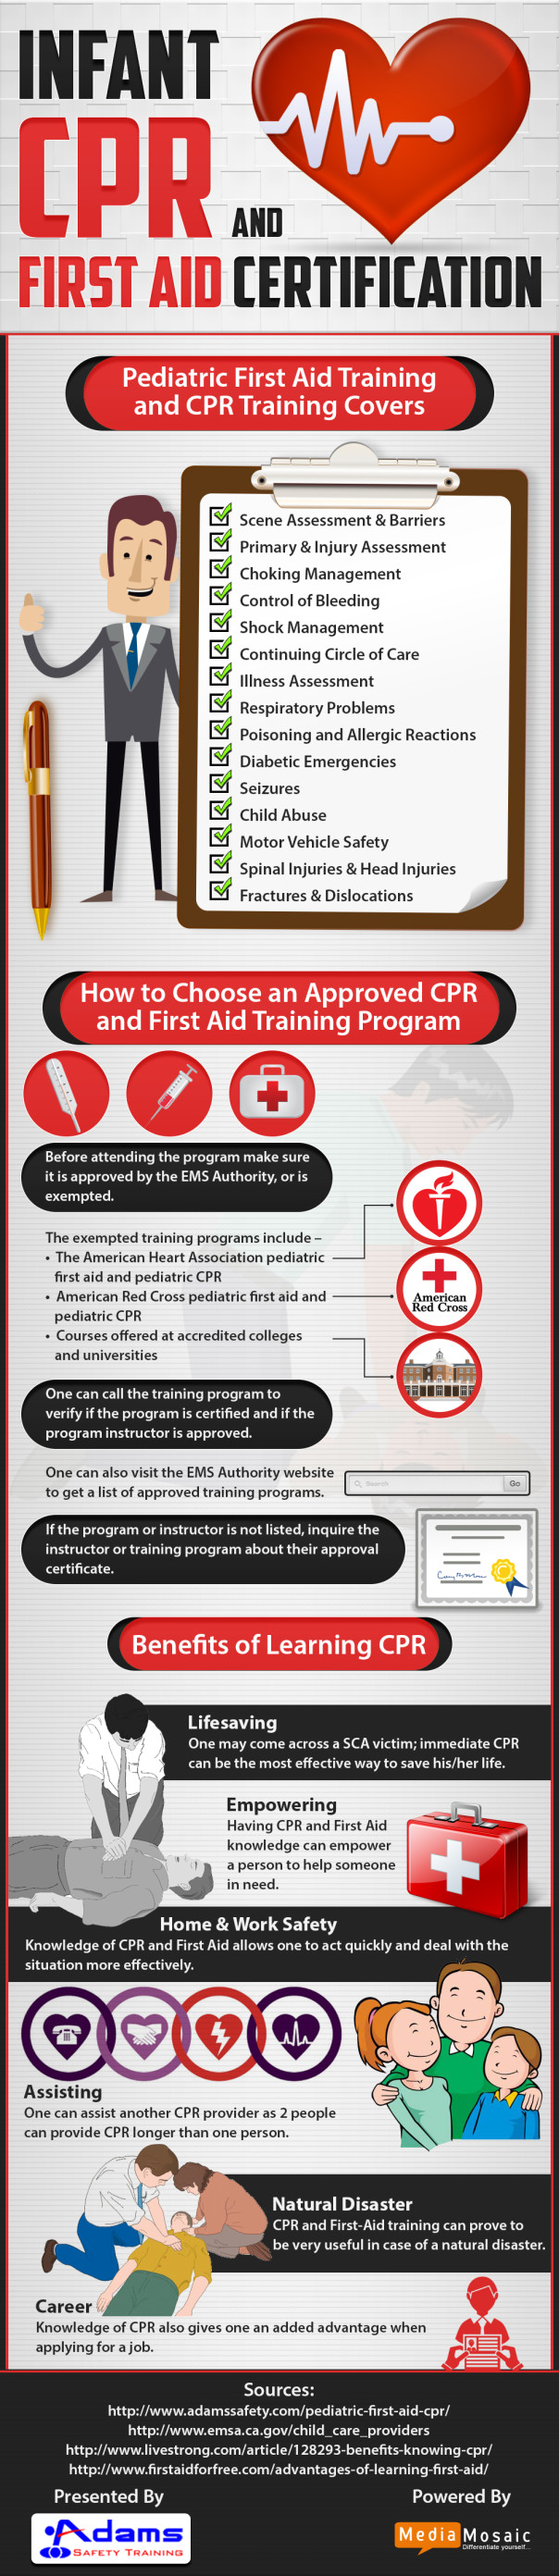 Infant CPR and first aid certification